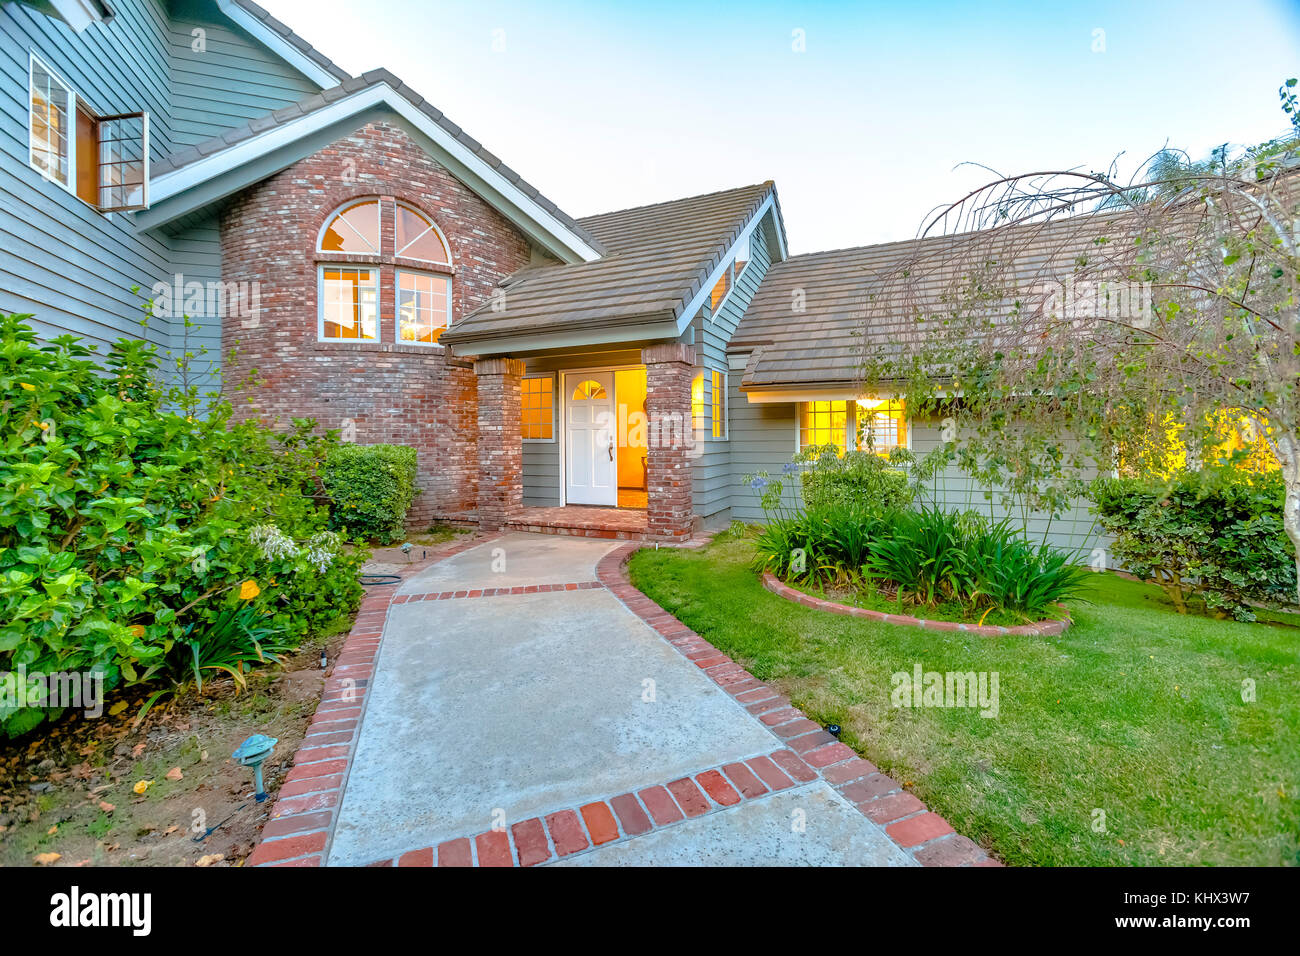 Brick And Stone Entry Of Luxury Home In San Diego . Wonderful California  Home In San Diego County. Real Estate Listings With Powerful Visuals.